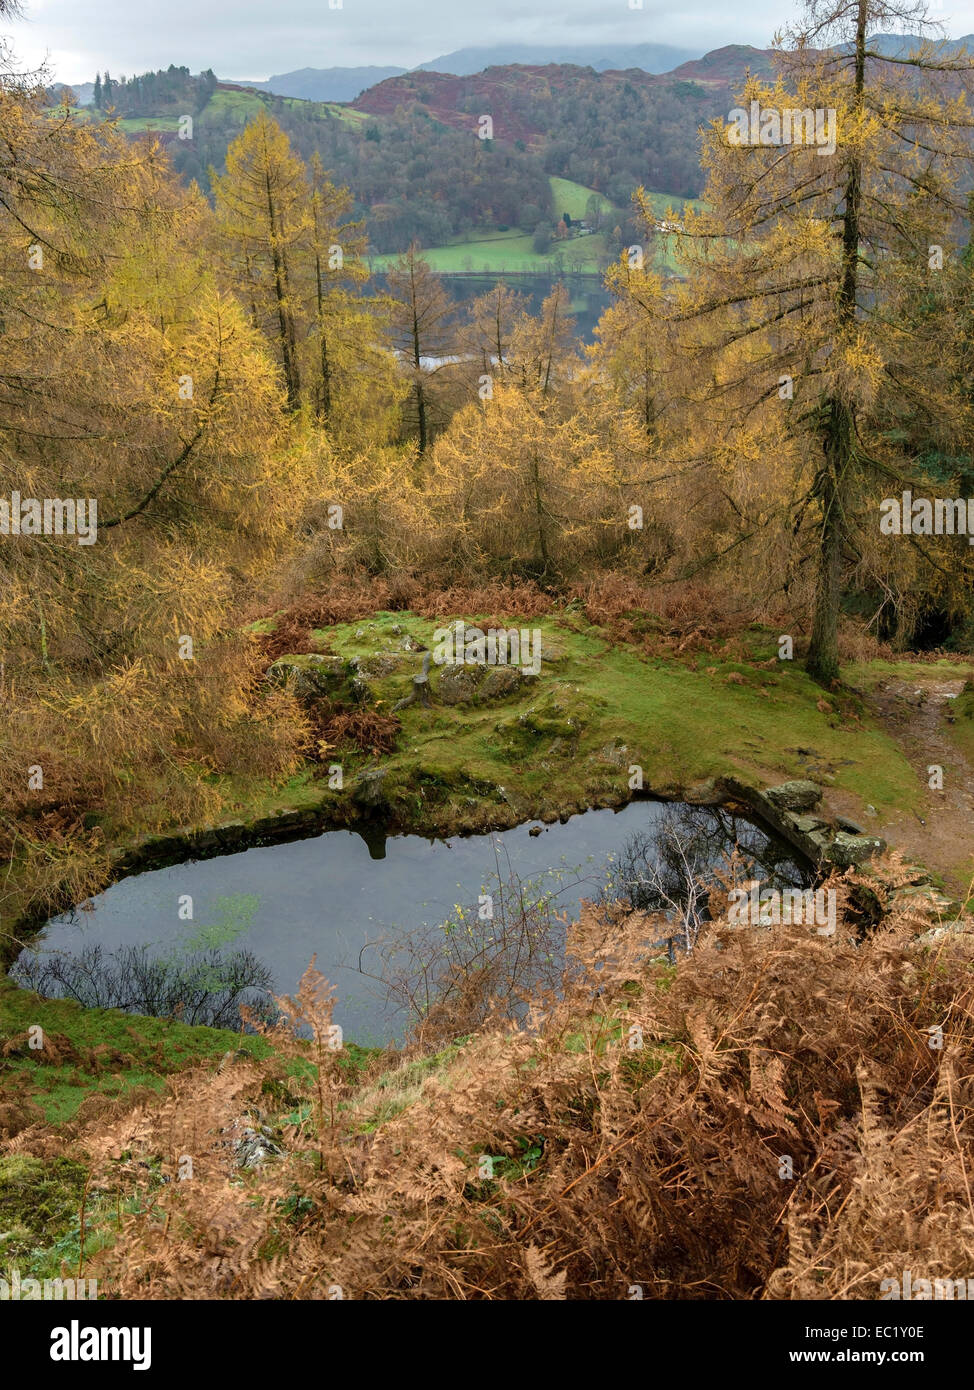 Autumn colour with small tarn and Grasmere beyond, Lake District, Cumbria, England, UK - Stock Image